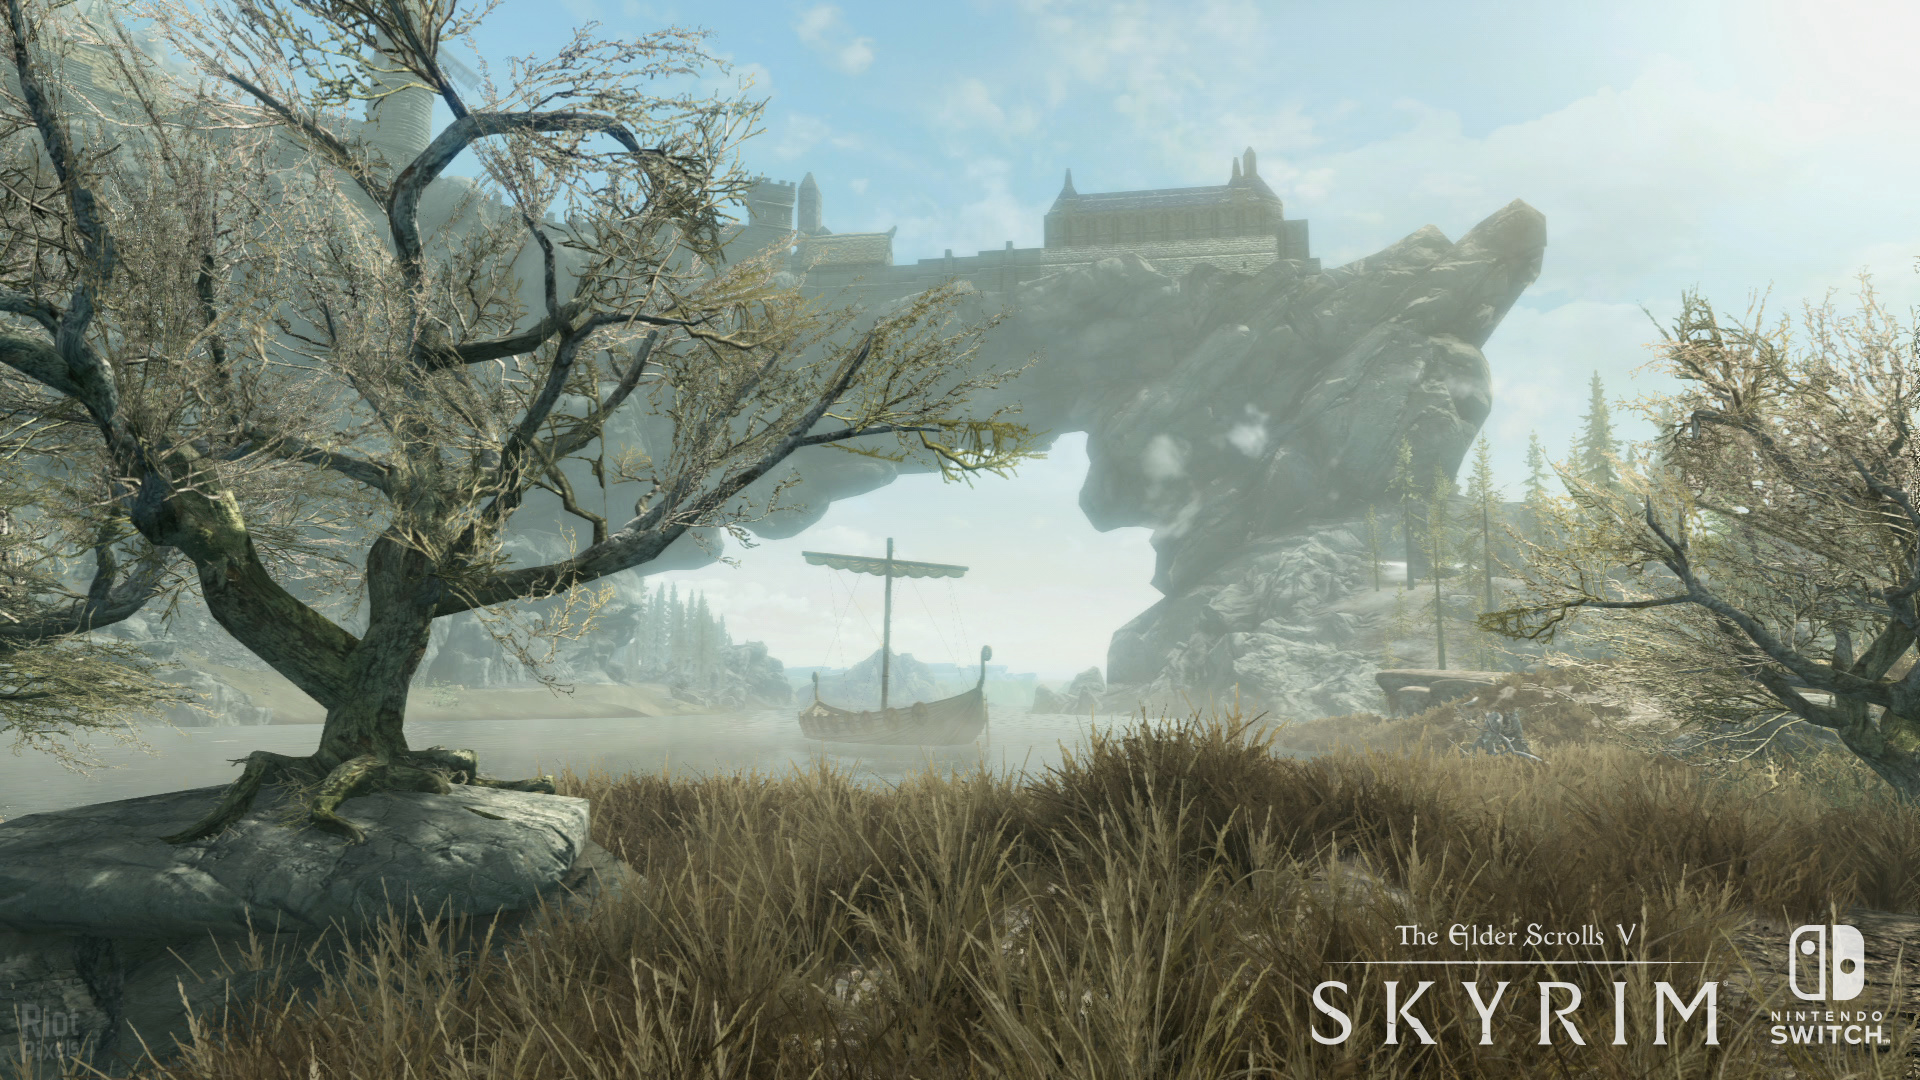 Elder Scrolls 5: Skyrim - Special Edition, The - game screenshots at